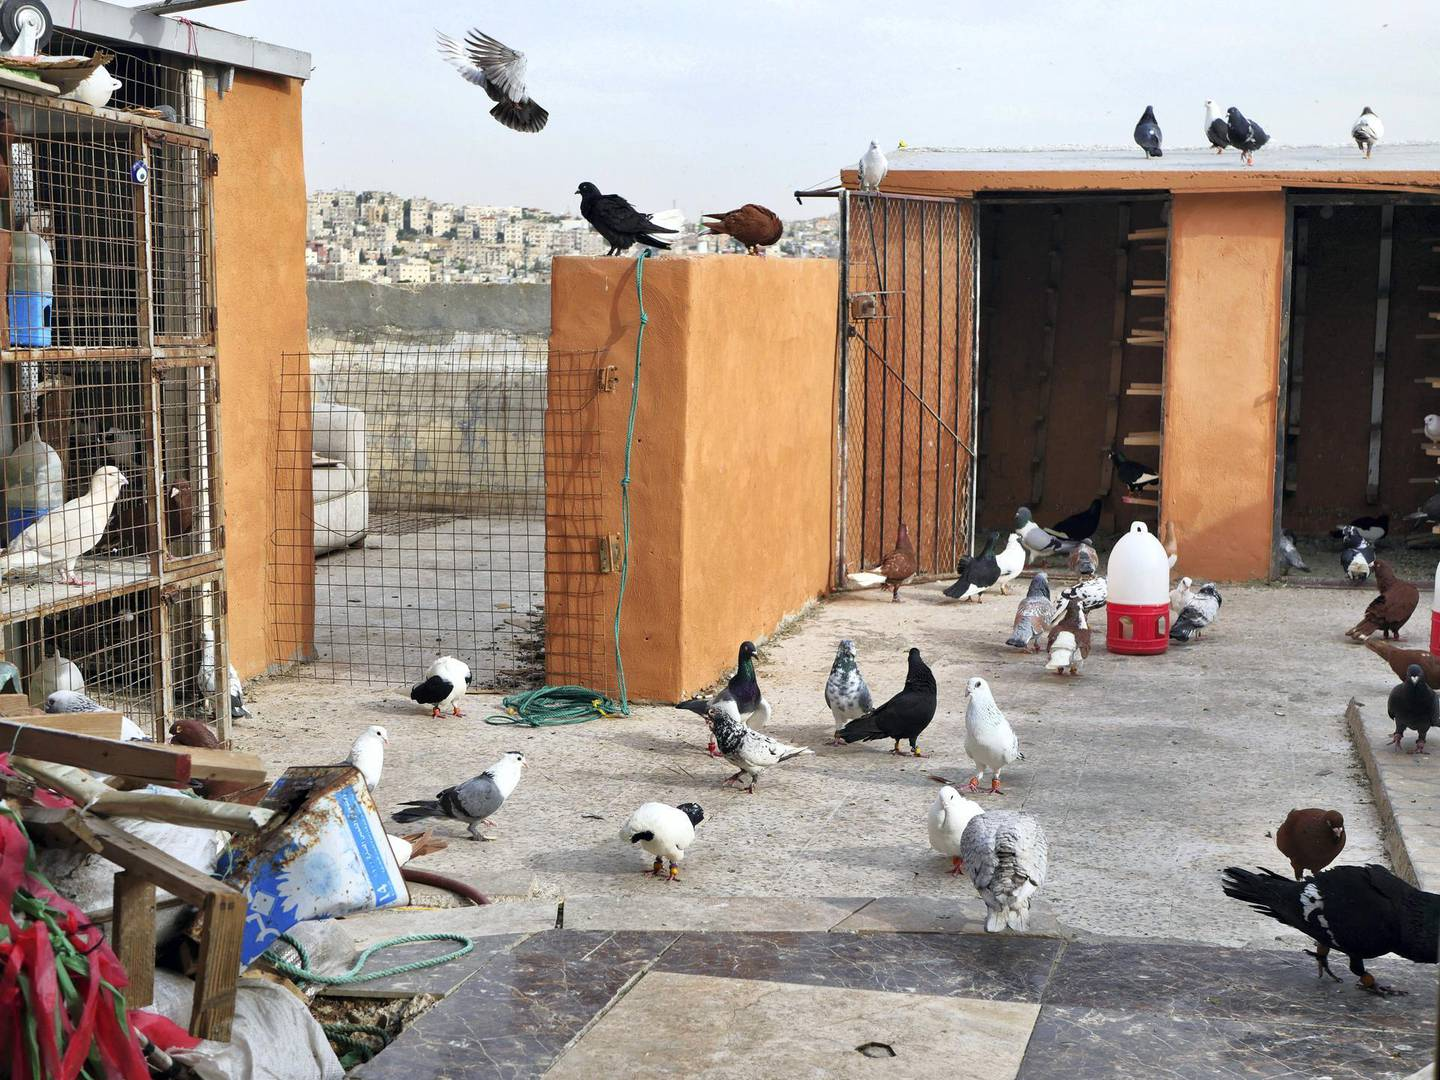 Zaid Al-Otayat family's rooftop in Amman which houses almost 400 pigeons of varying colours and markings. Picture by Charlie Faulkner